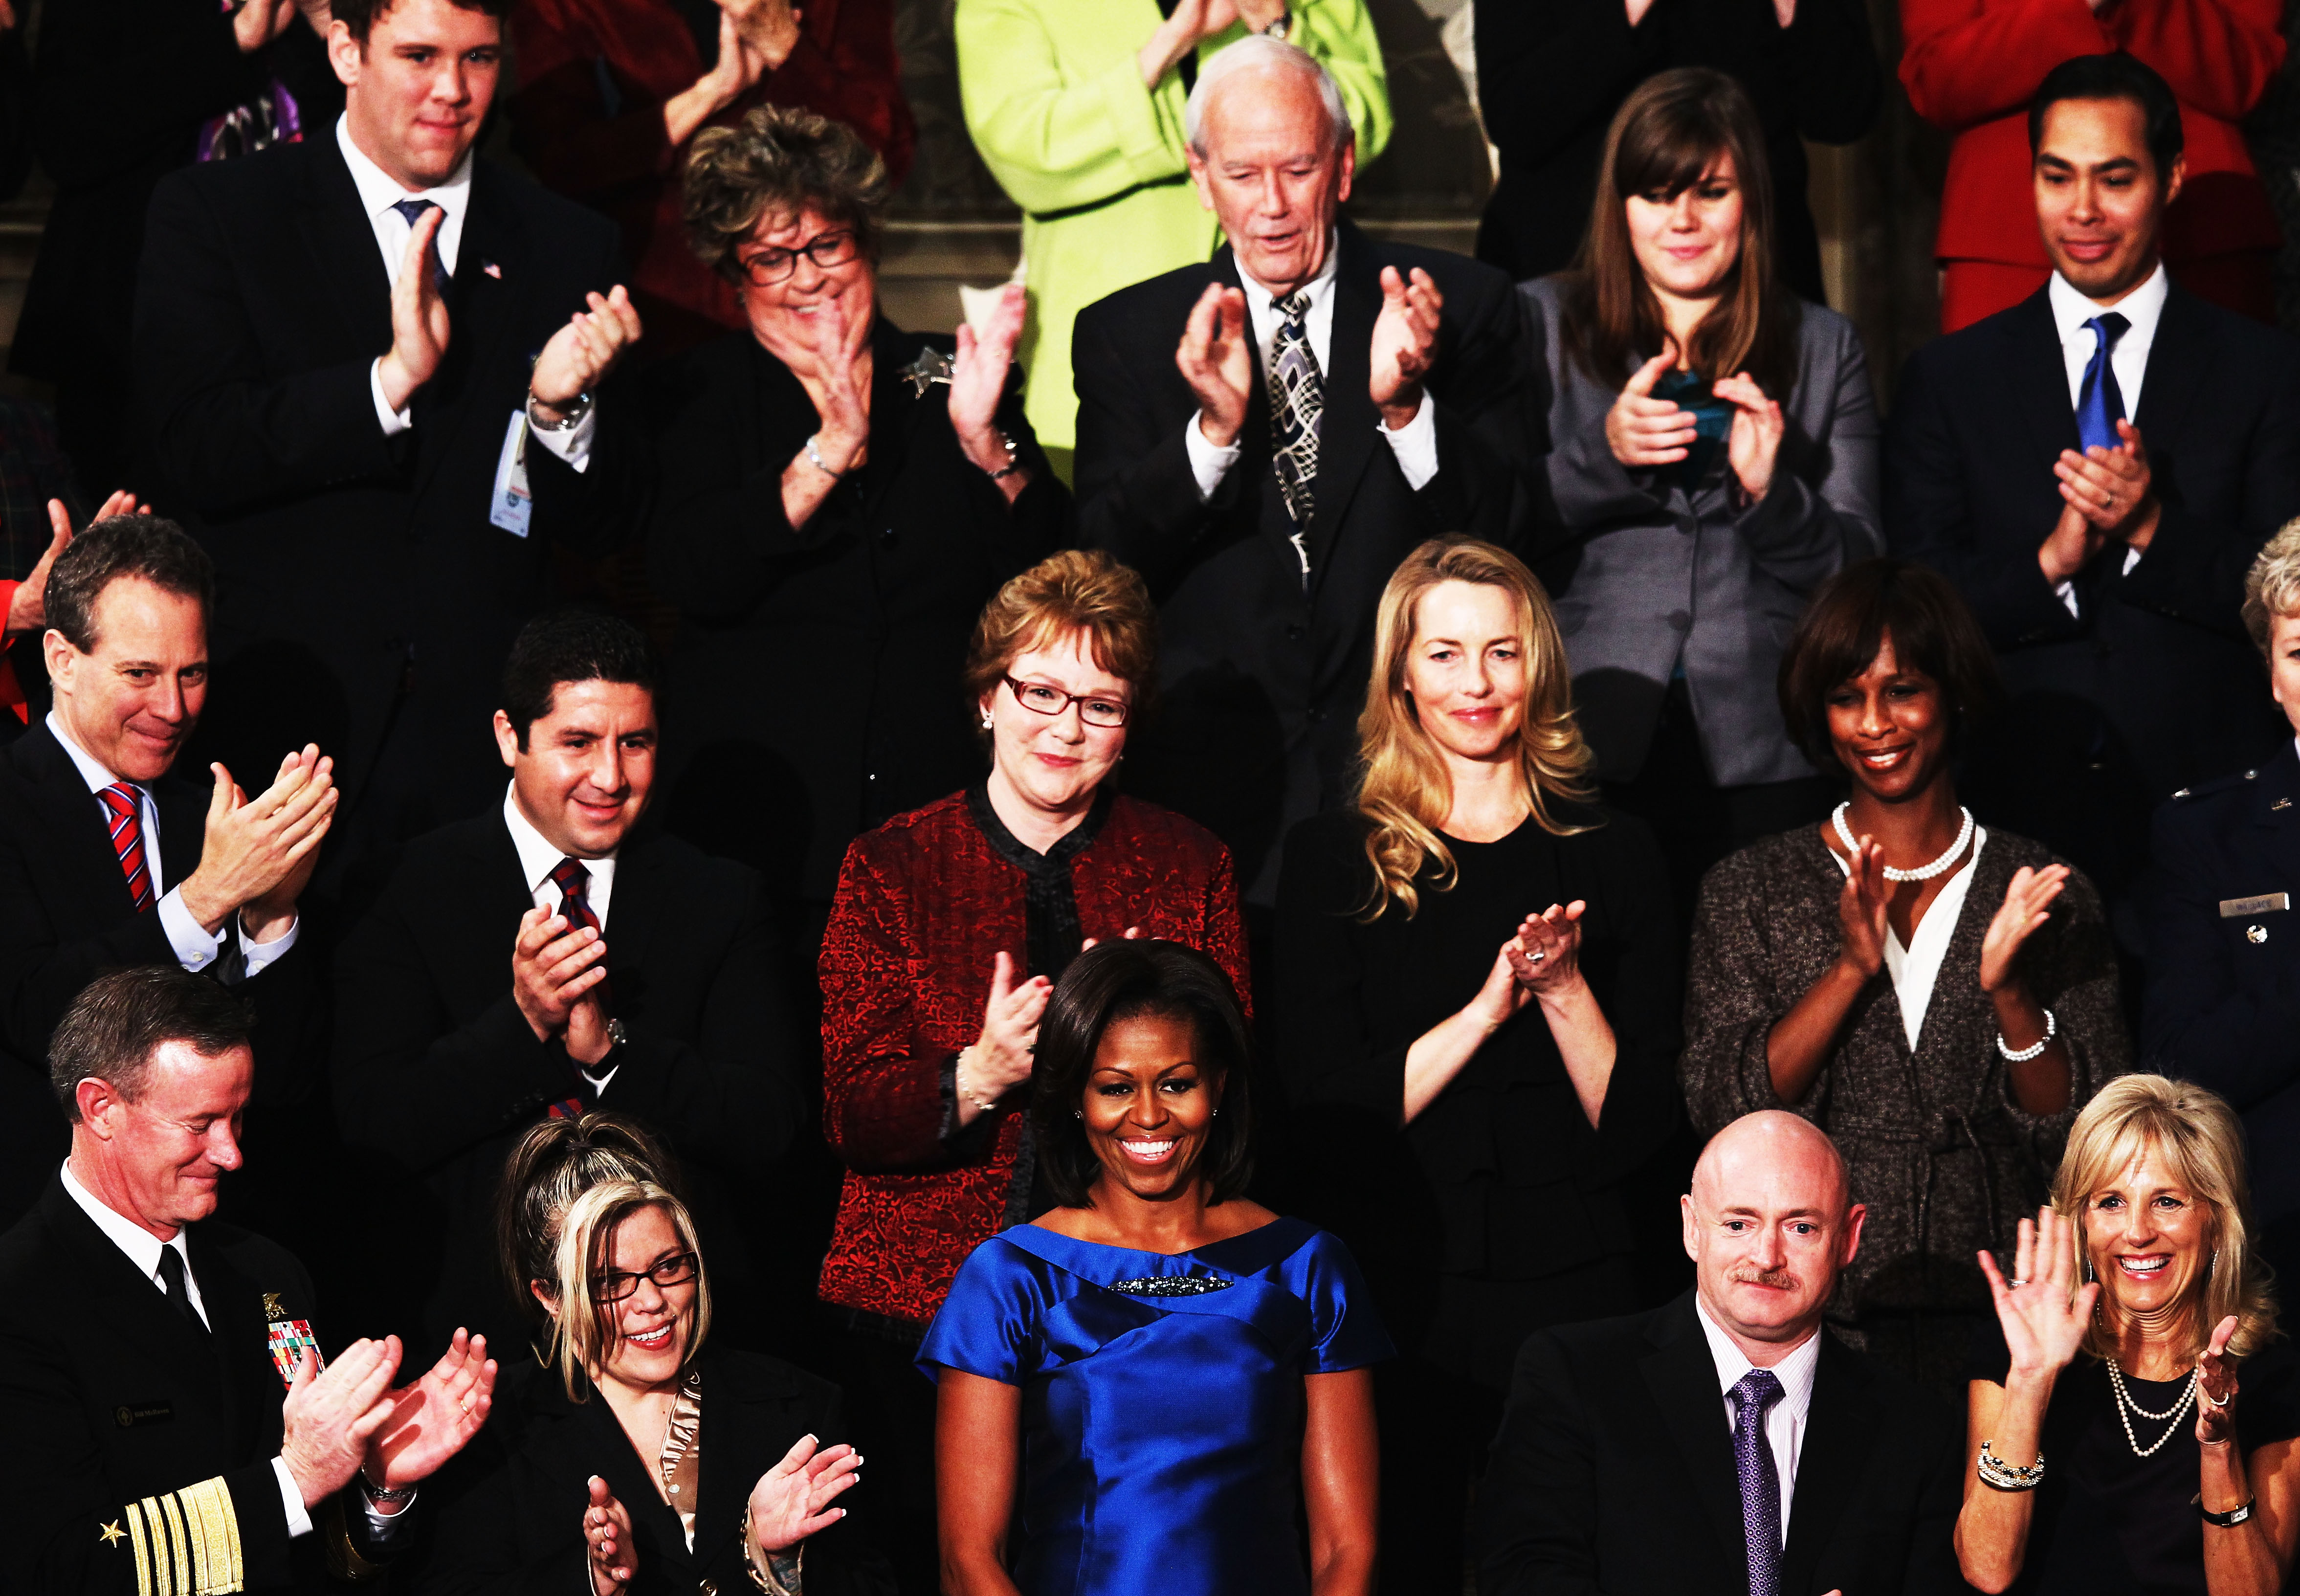 First Lady Michelle Obama receives applause prior to the start of President Barack Obama's State of the Union speech Jan 24, 2012 in Washington. Among the attendees is Admiral William McRaven who commands the Joint Special Operations Command and is credited with executing Operation Neptune's Spear, the specials ops raid that led to the death of Osama bin Laden.